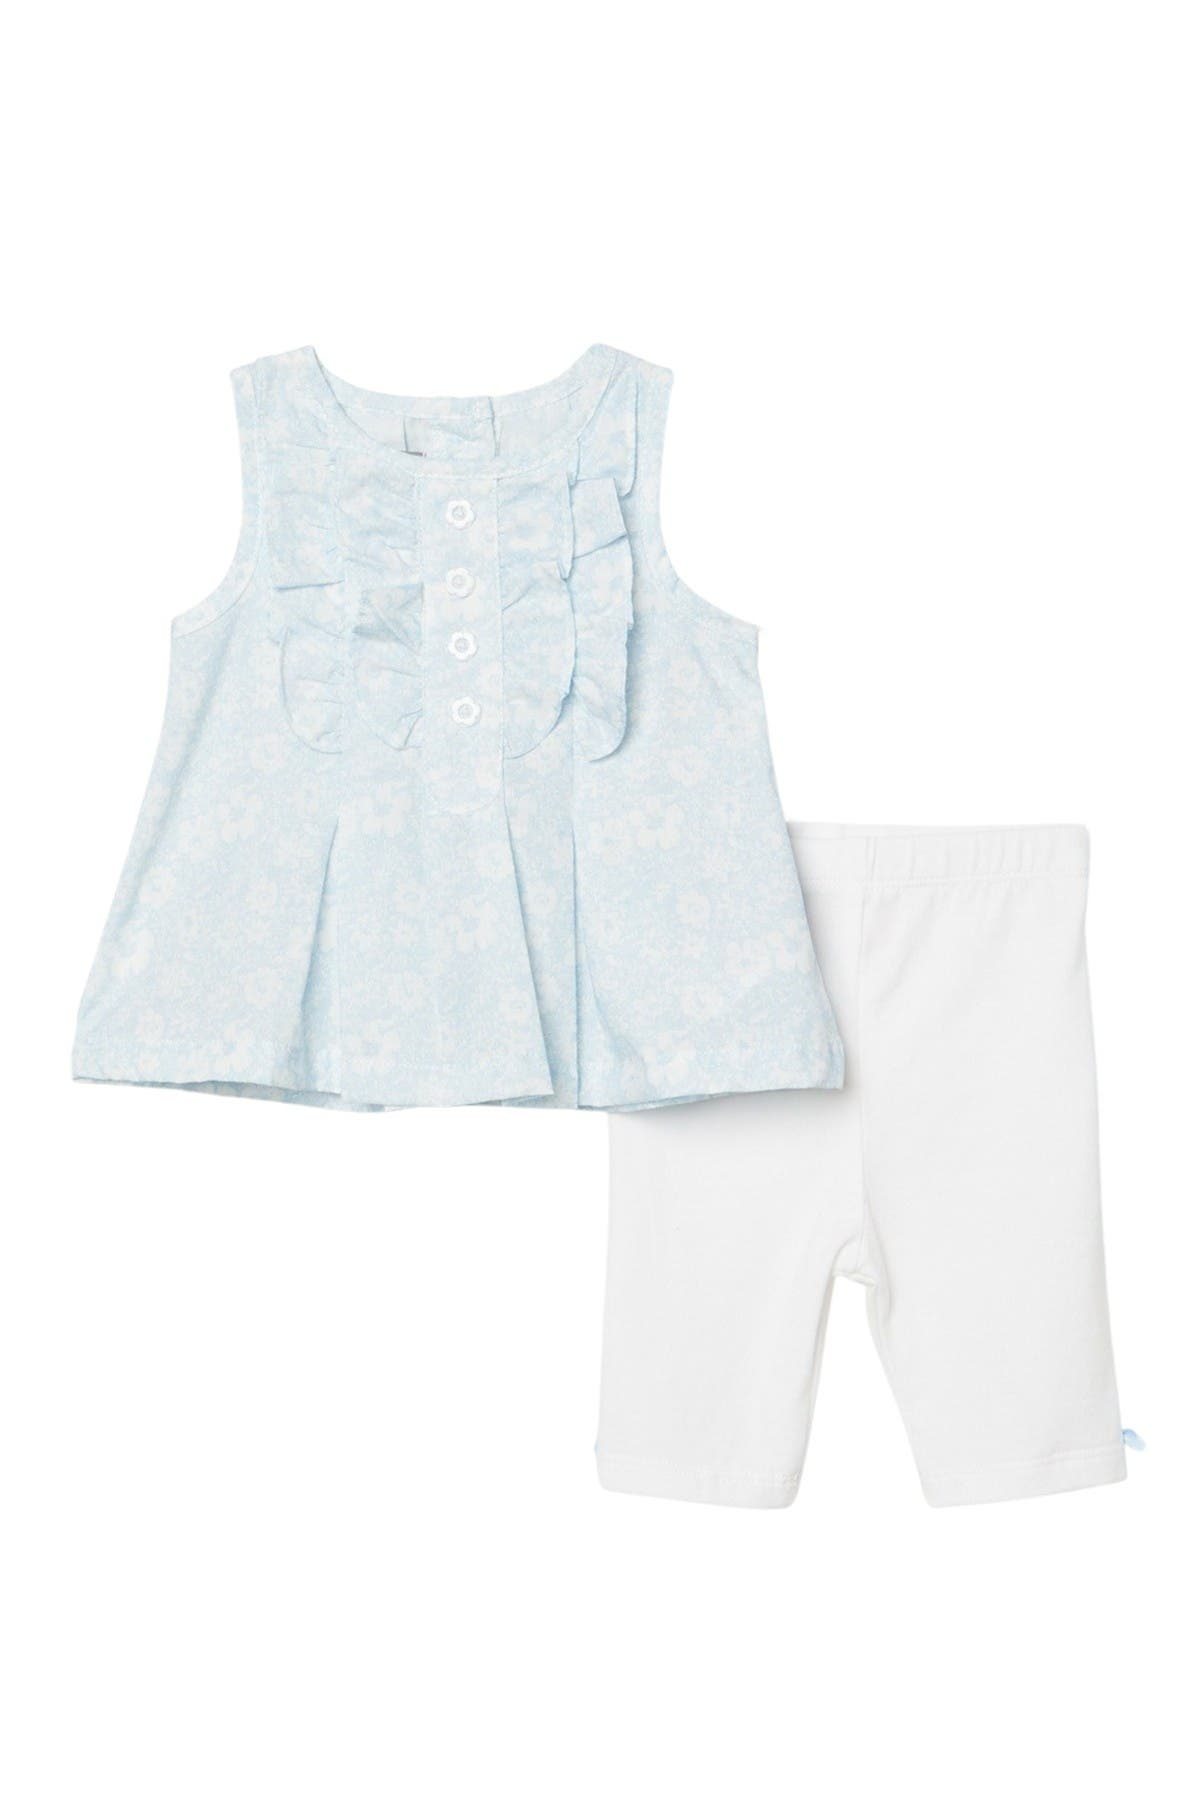 Image of Pippa & Julie Ruffled Tank Top & Capris Set